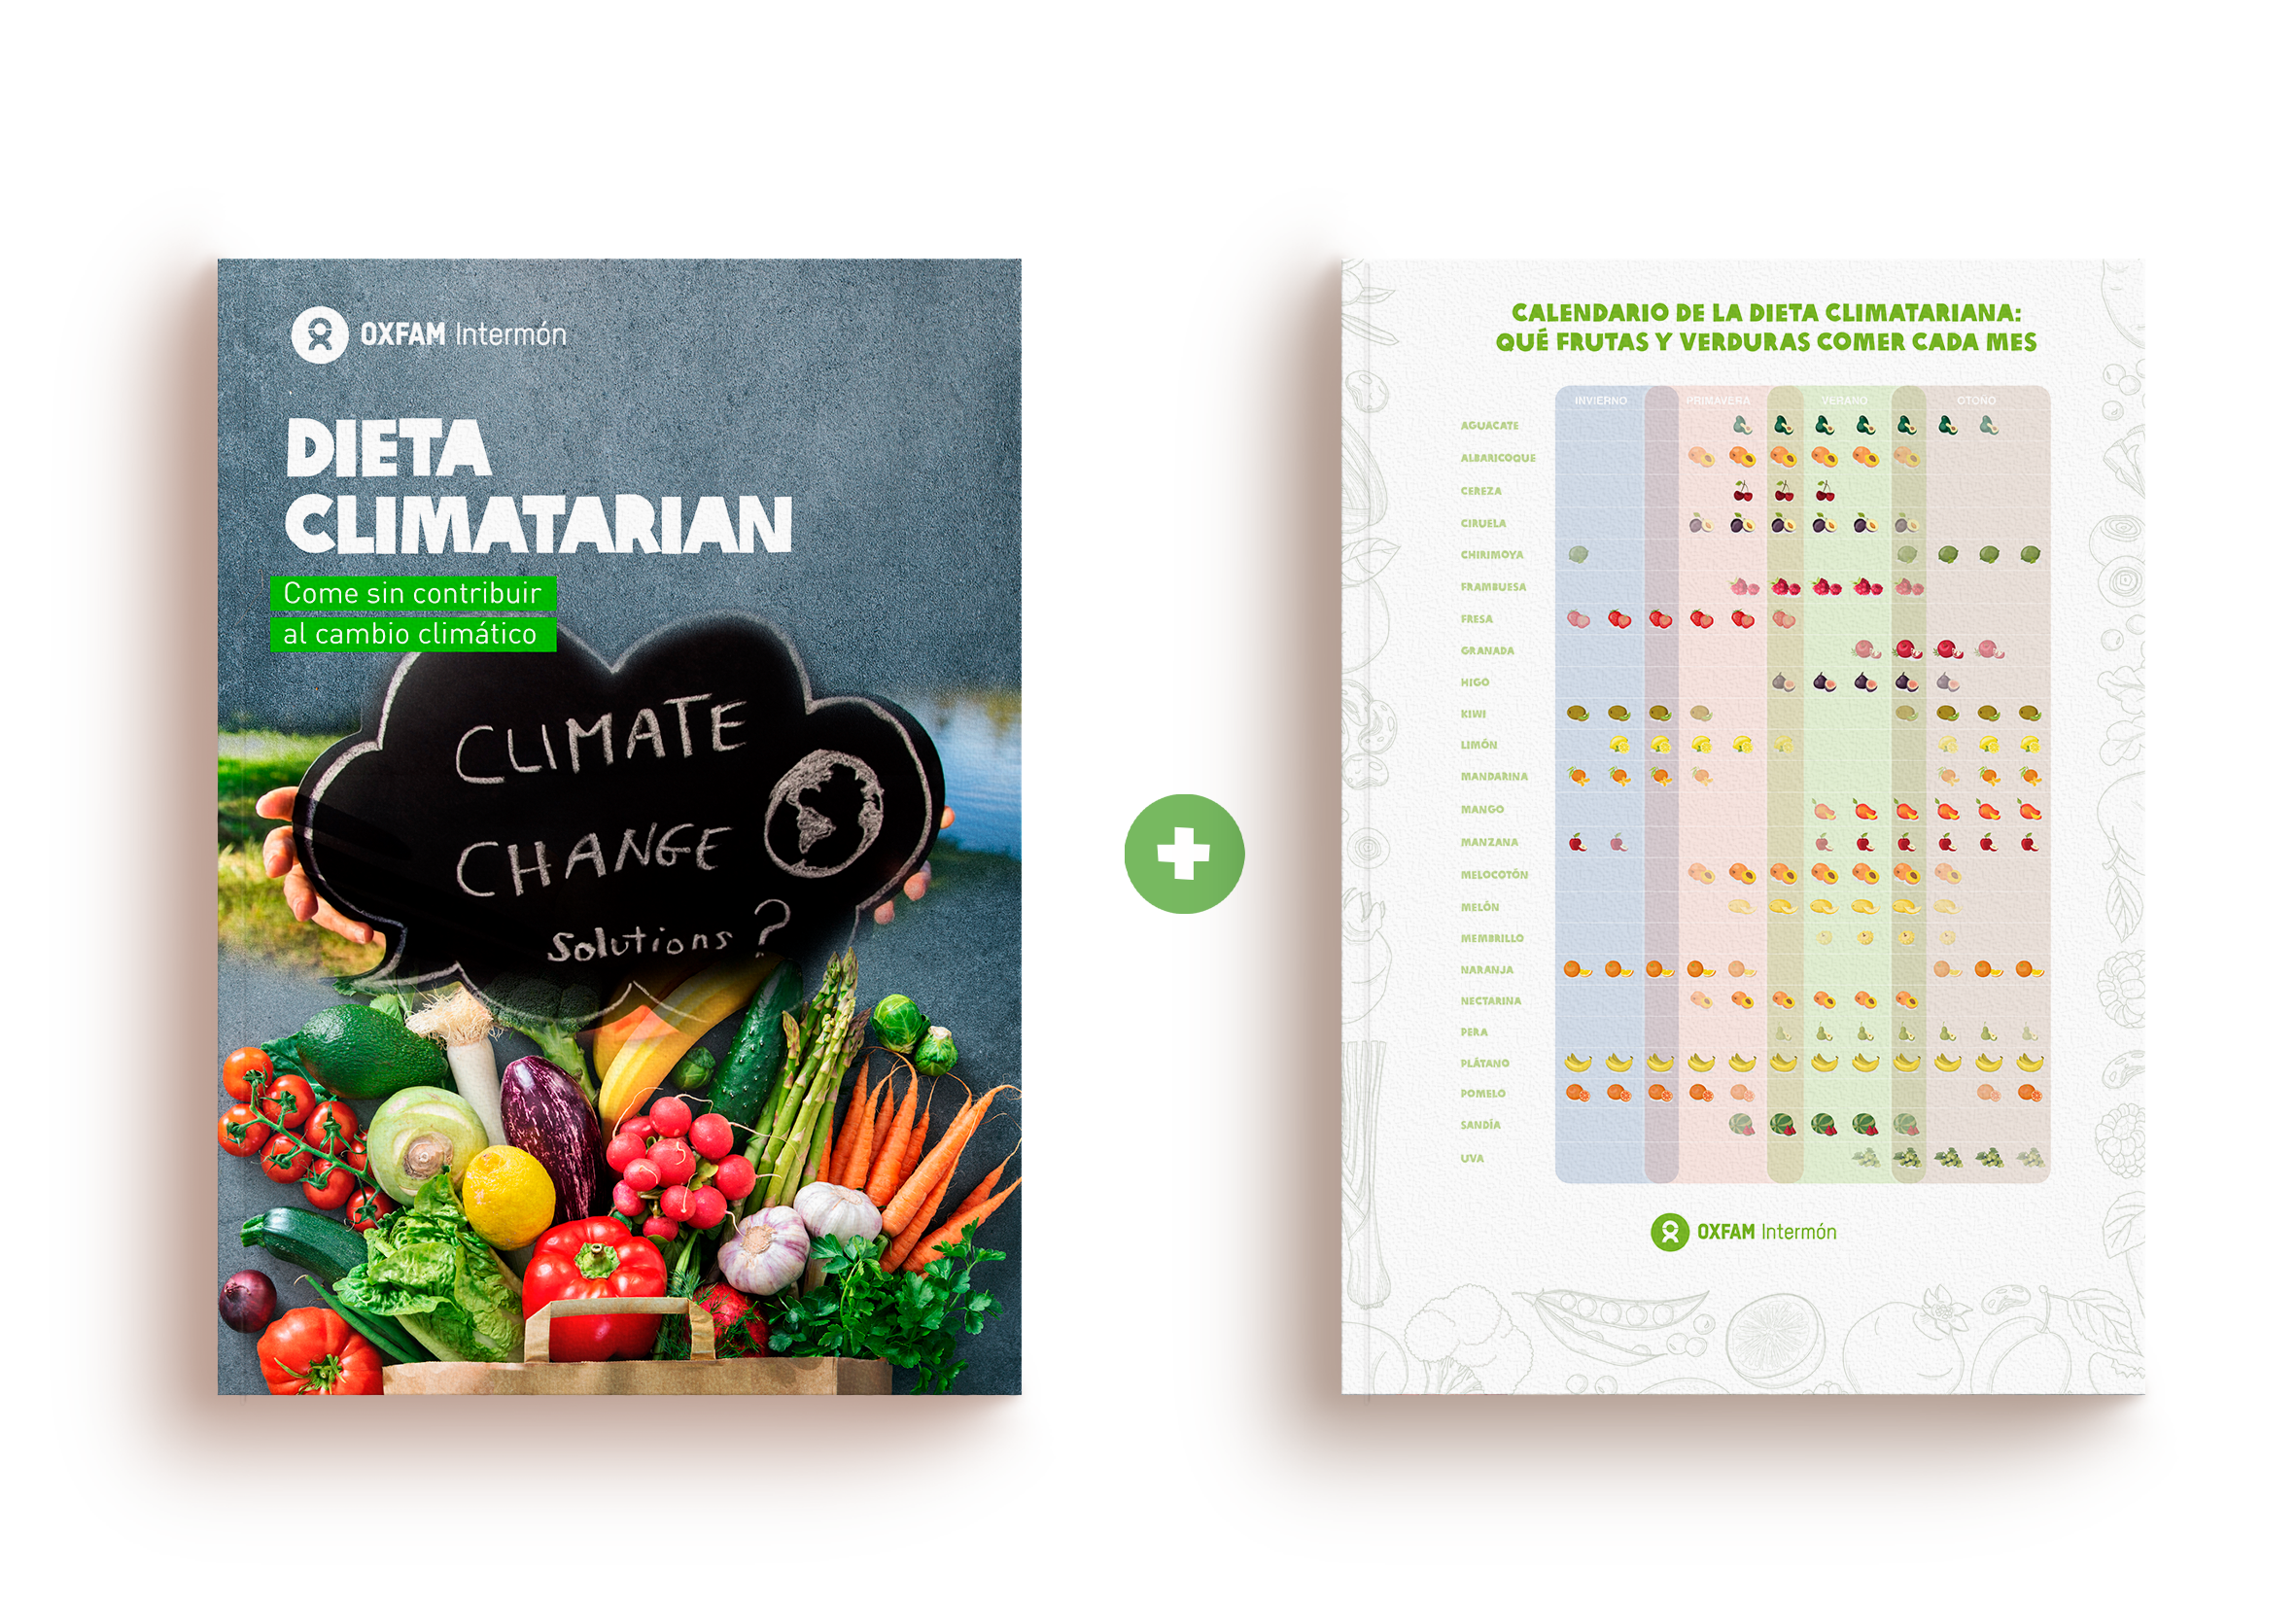 IOX - Climatarian diet - Portada doble